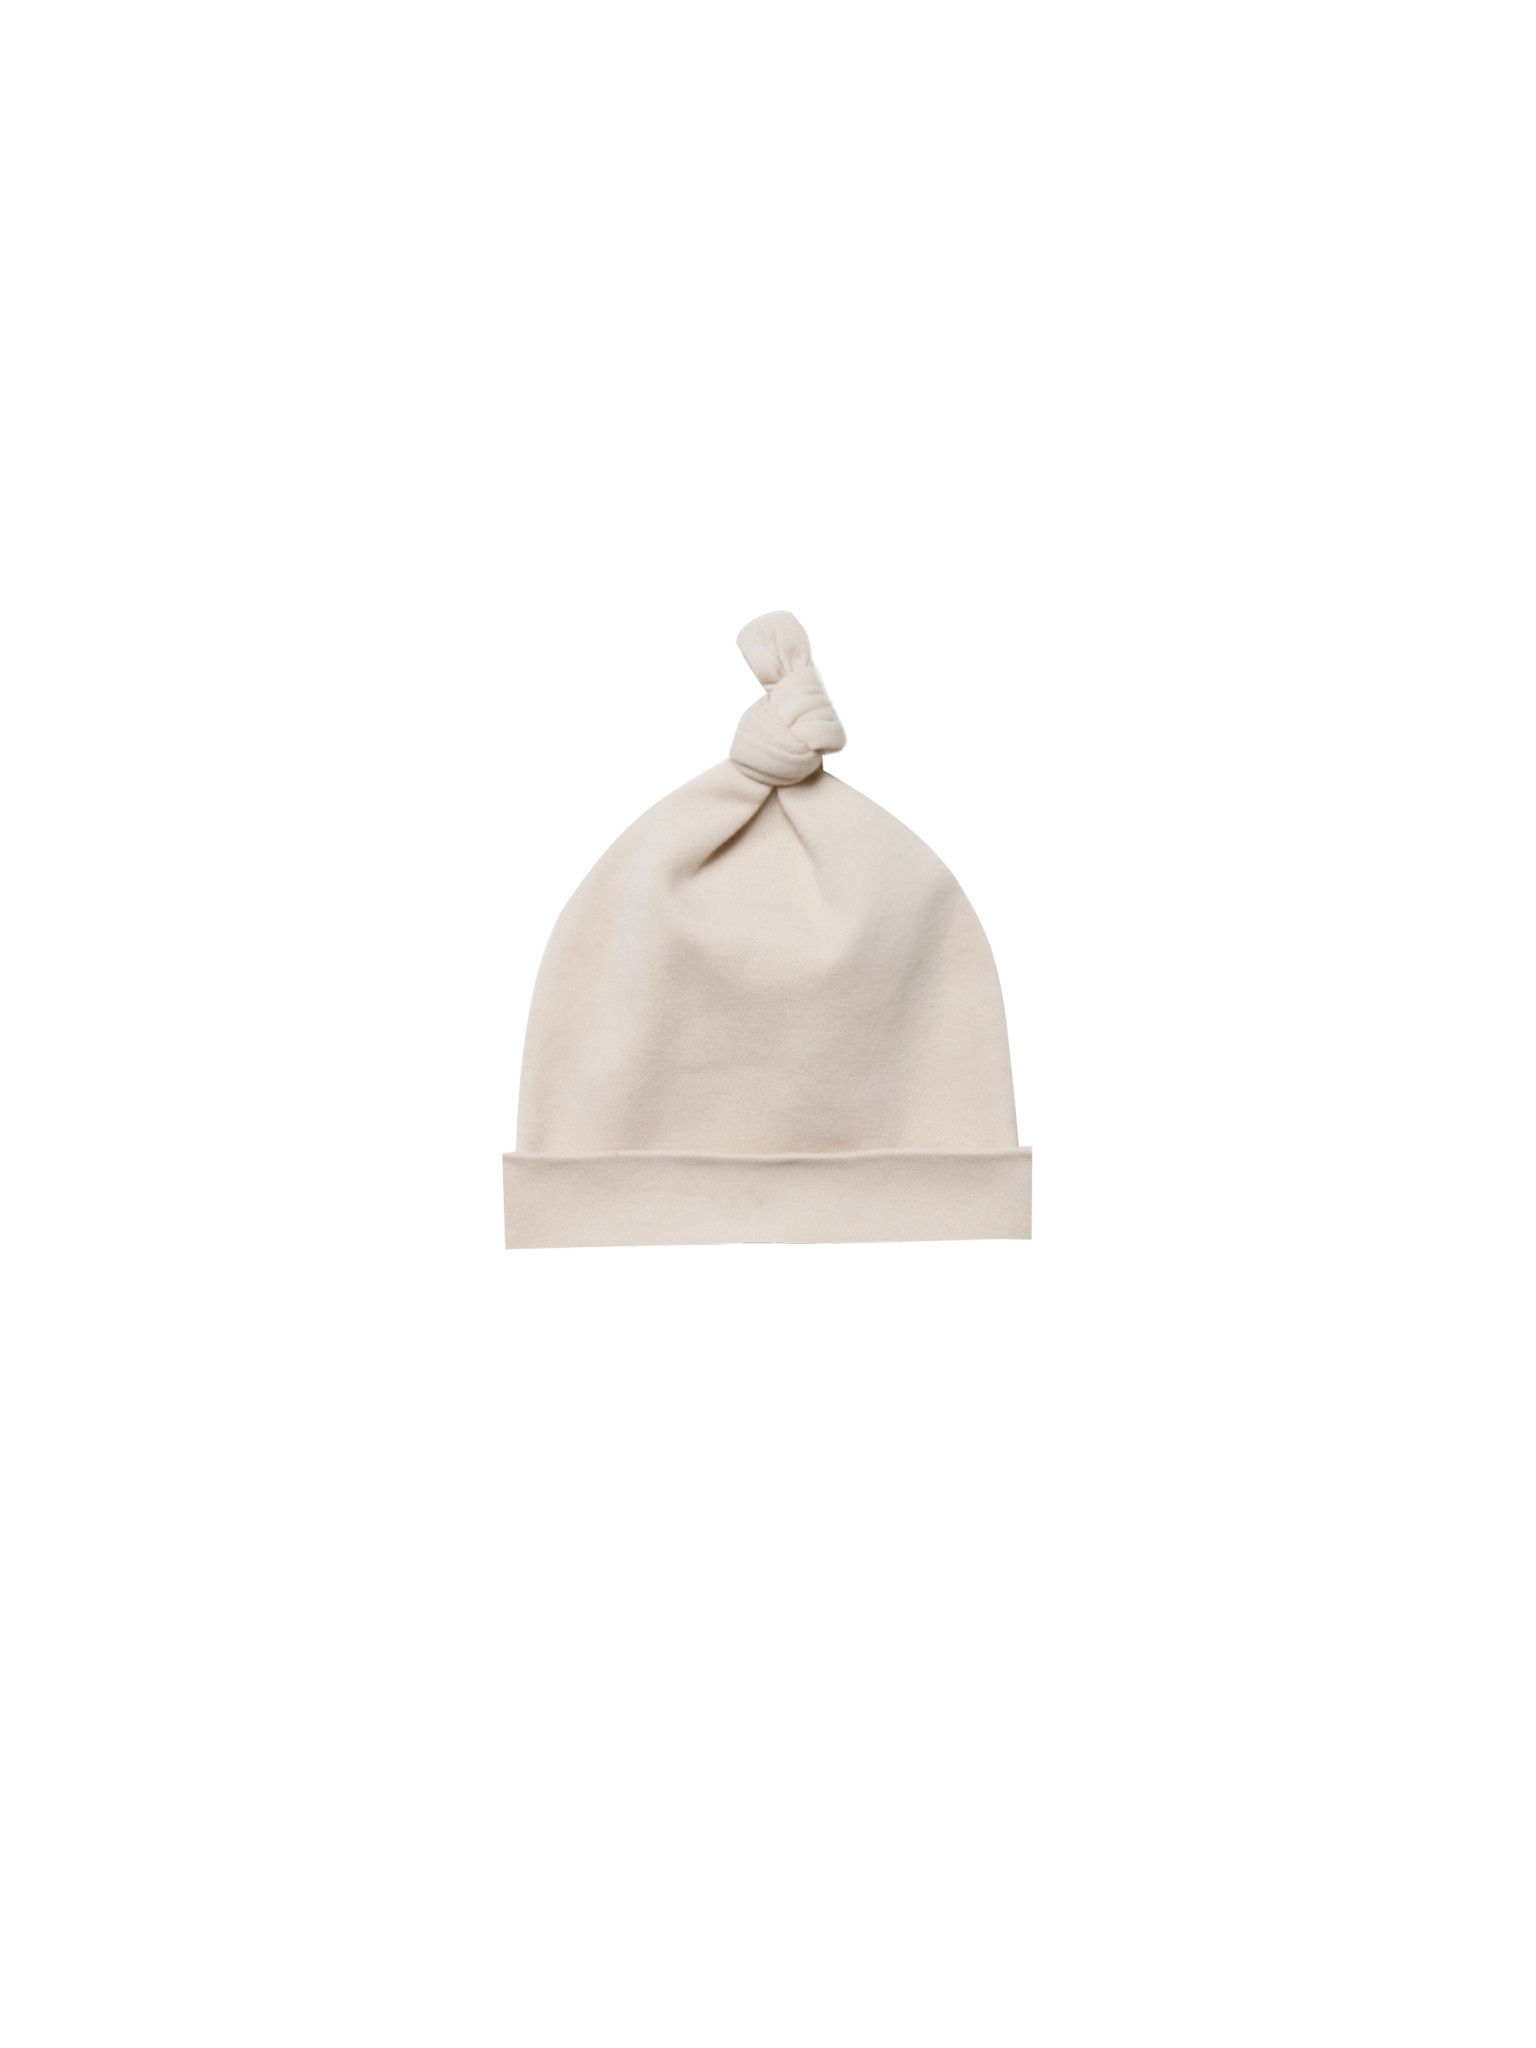 QUINCY MAE Organic Knotted Baby Hat